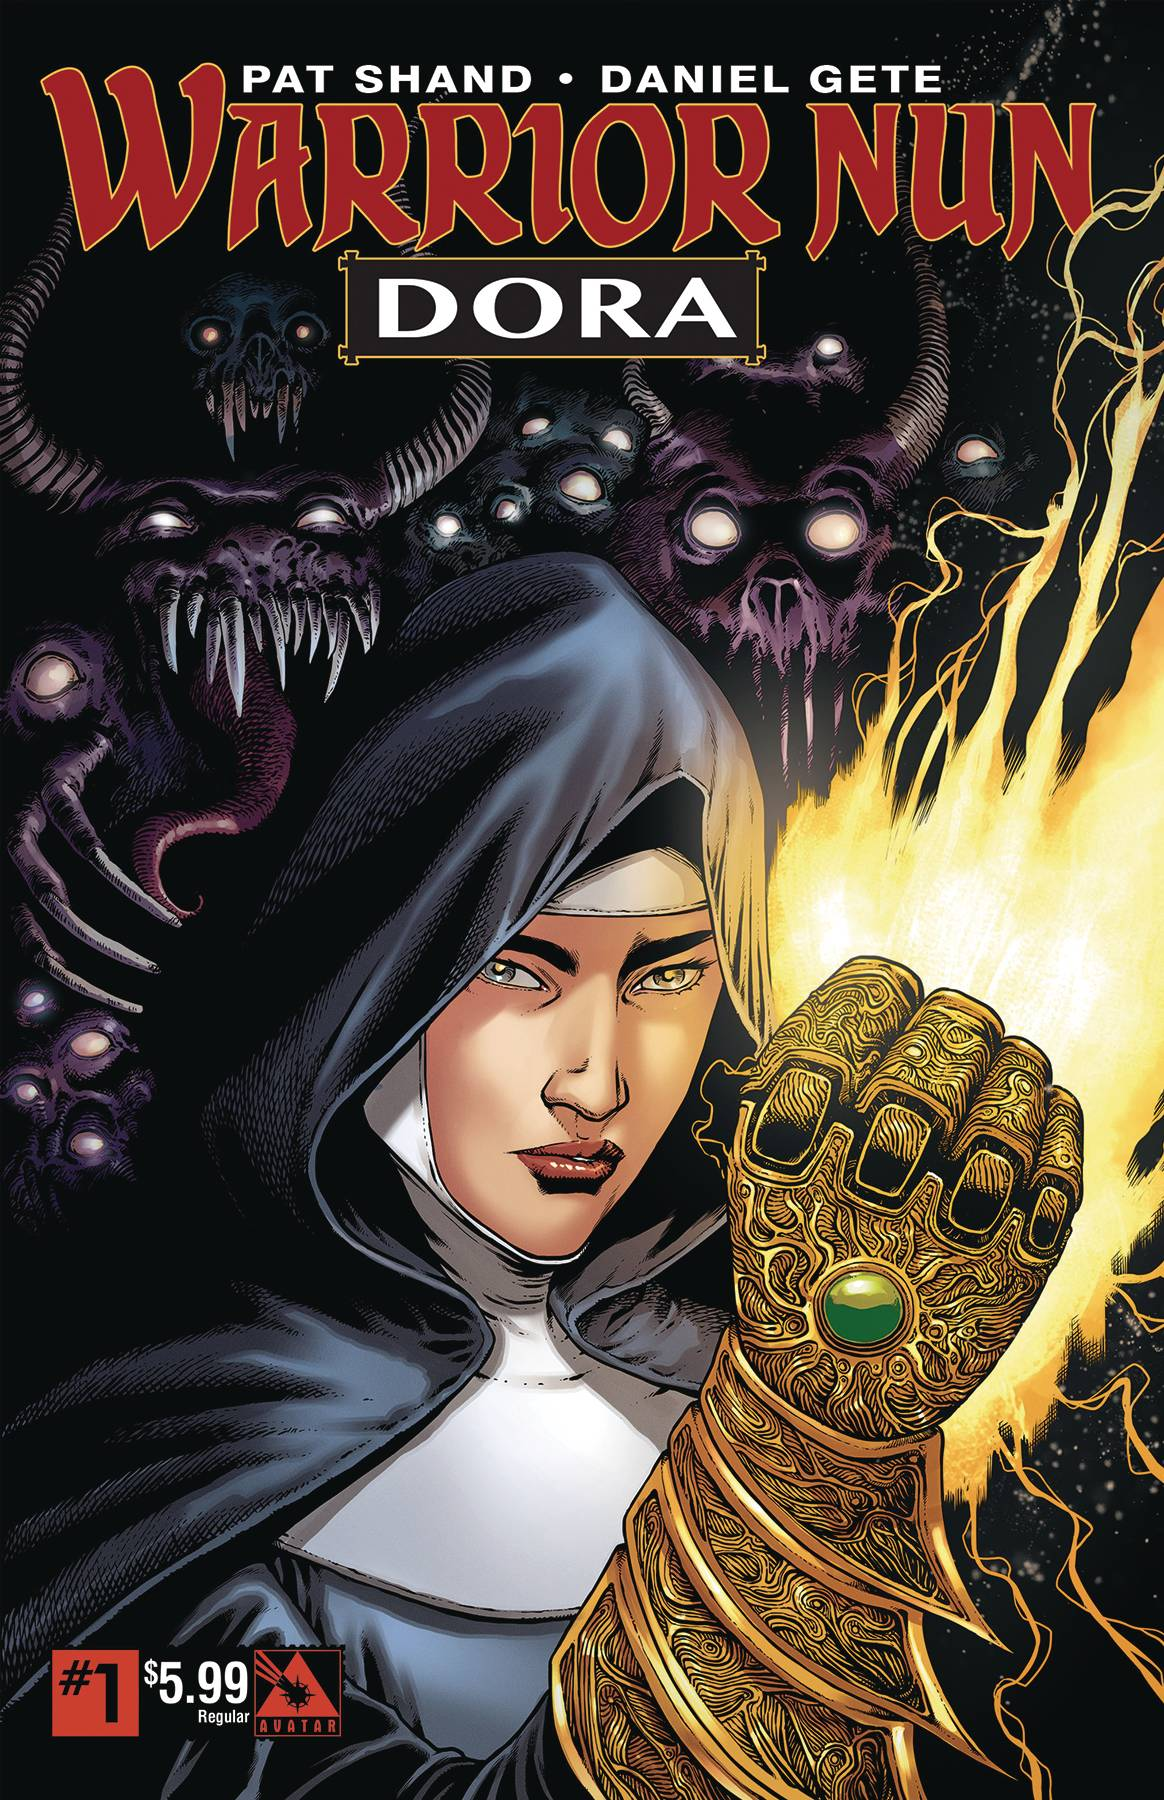 WARRIOR NUN DORA #1 REGULAR